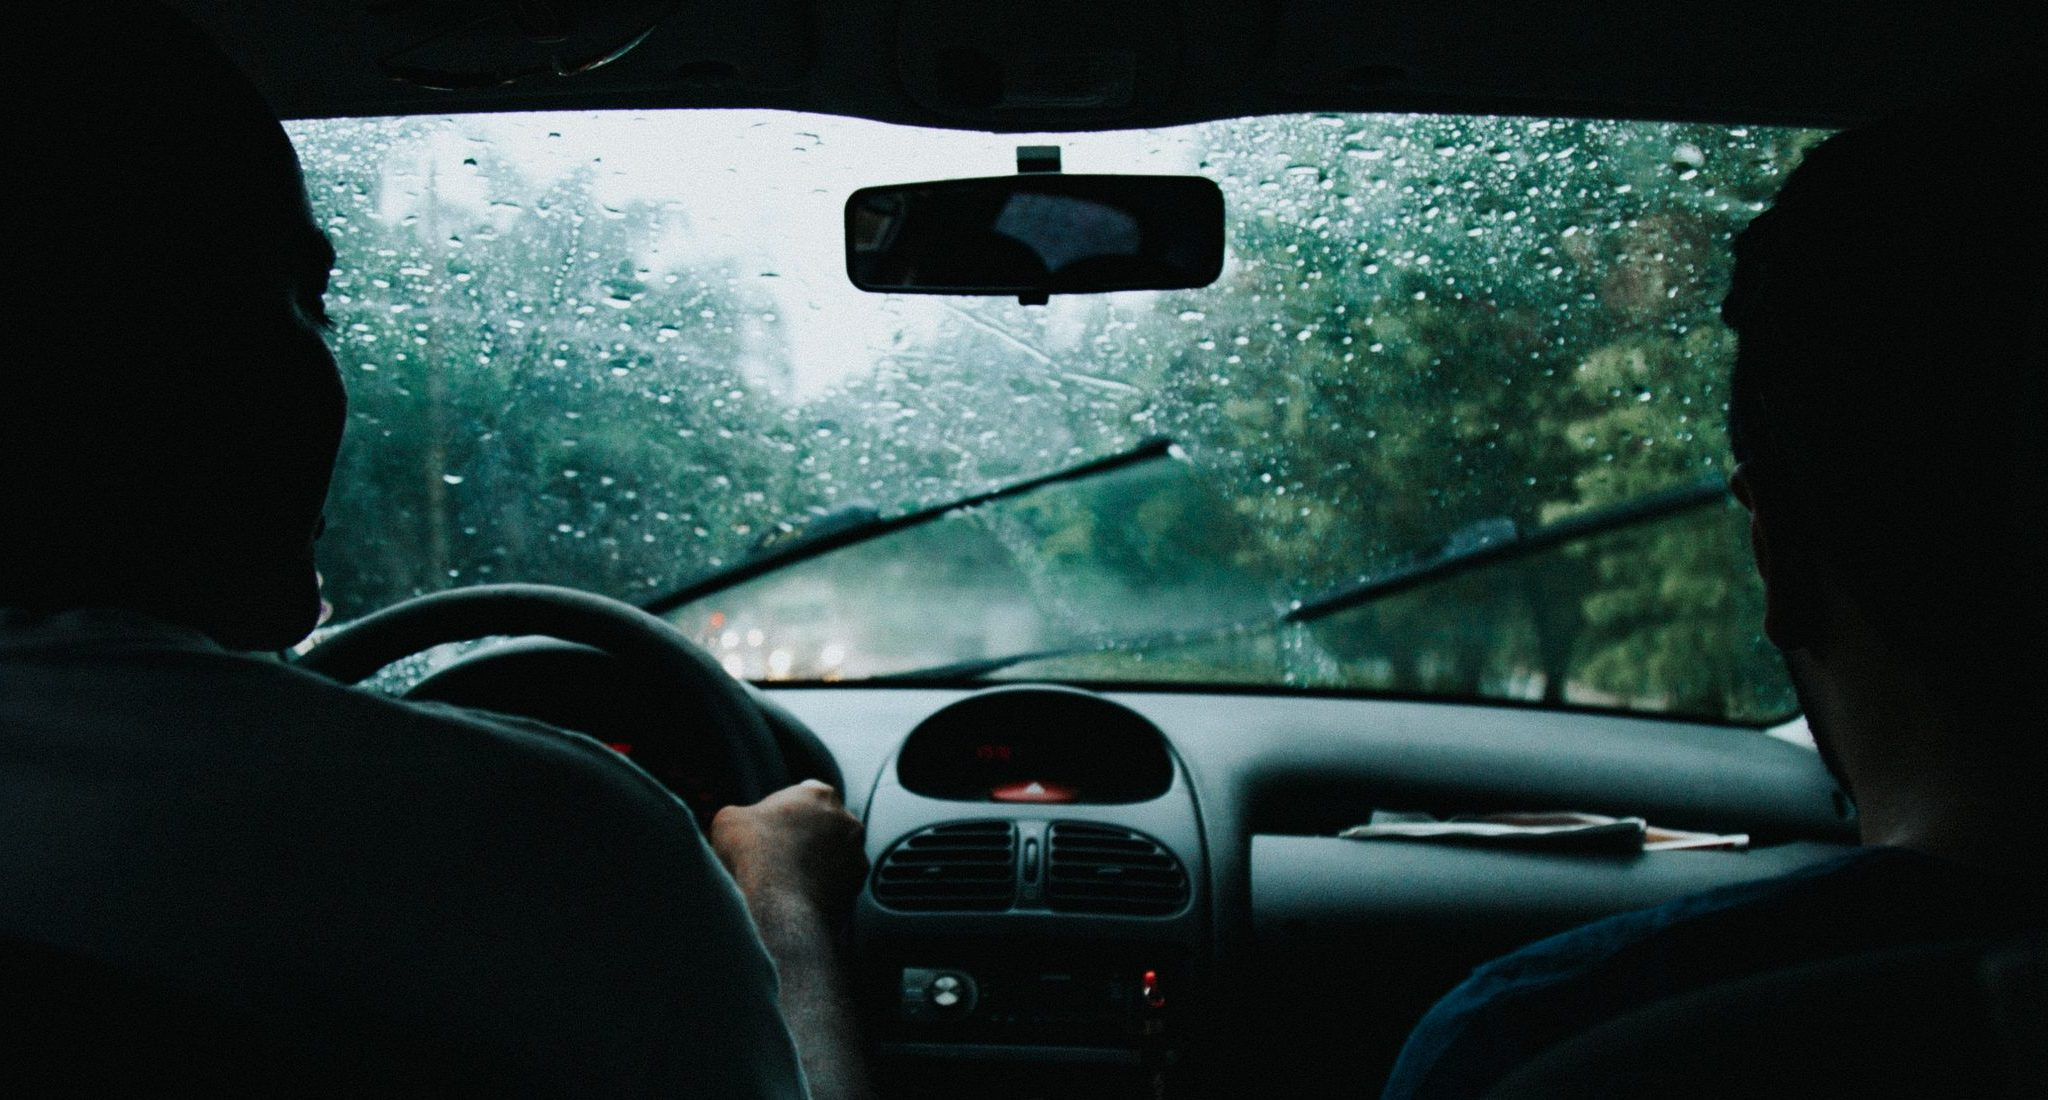 Rainy Season and Car Accidents